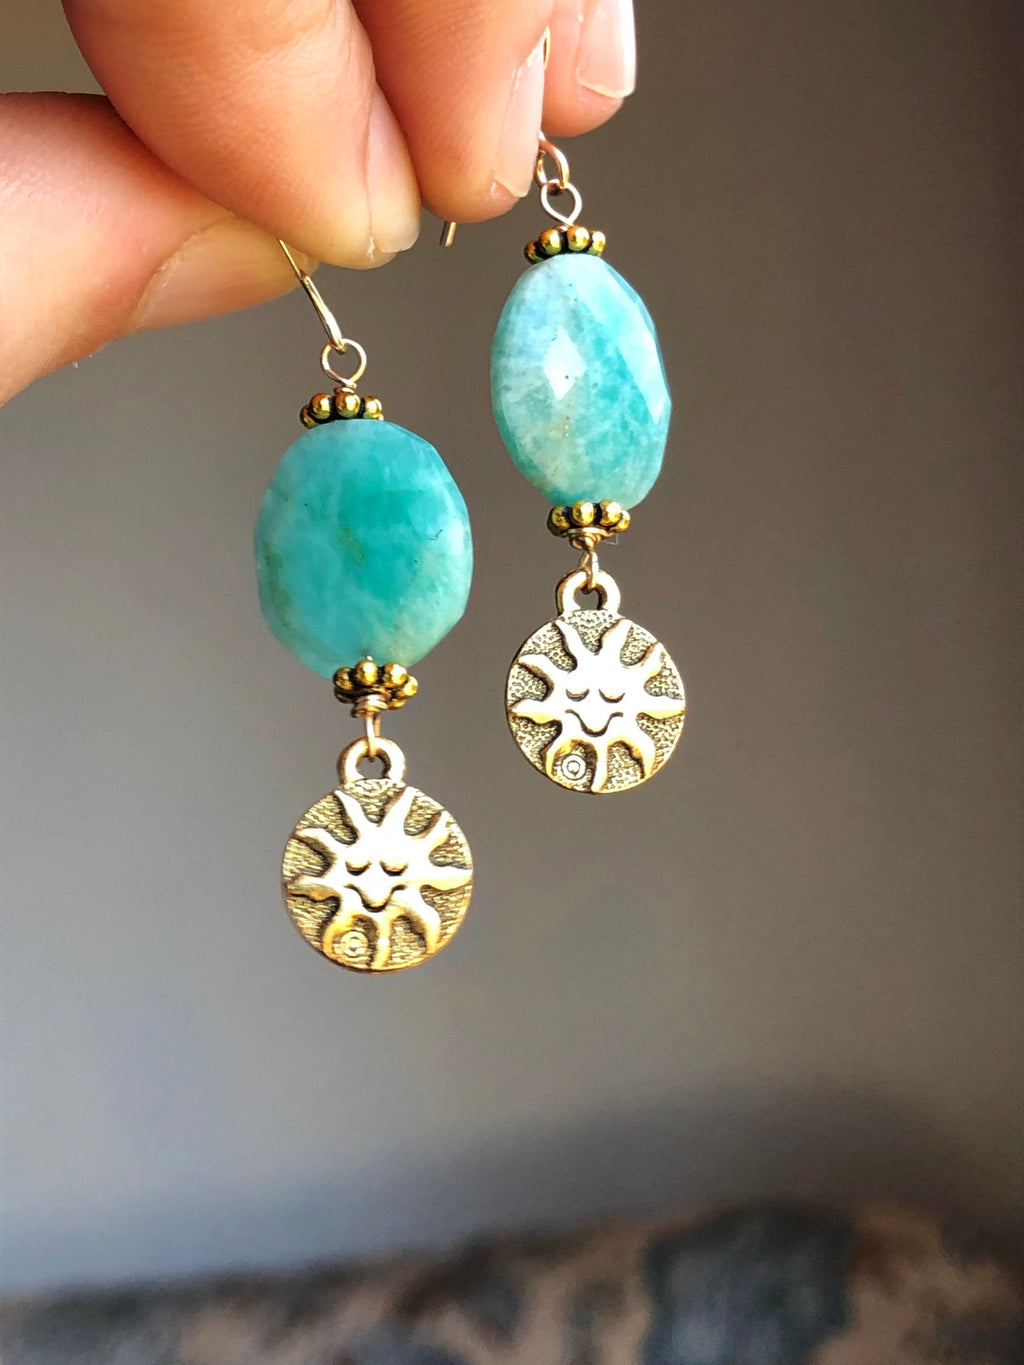 Amazonite Sun Earrings / Celestial Vintage Charms / Brass Sun Moon Jewelry / AAA Quality Amazonite Natural Faceted Gemstone 14k Gold Filled